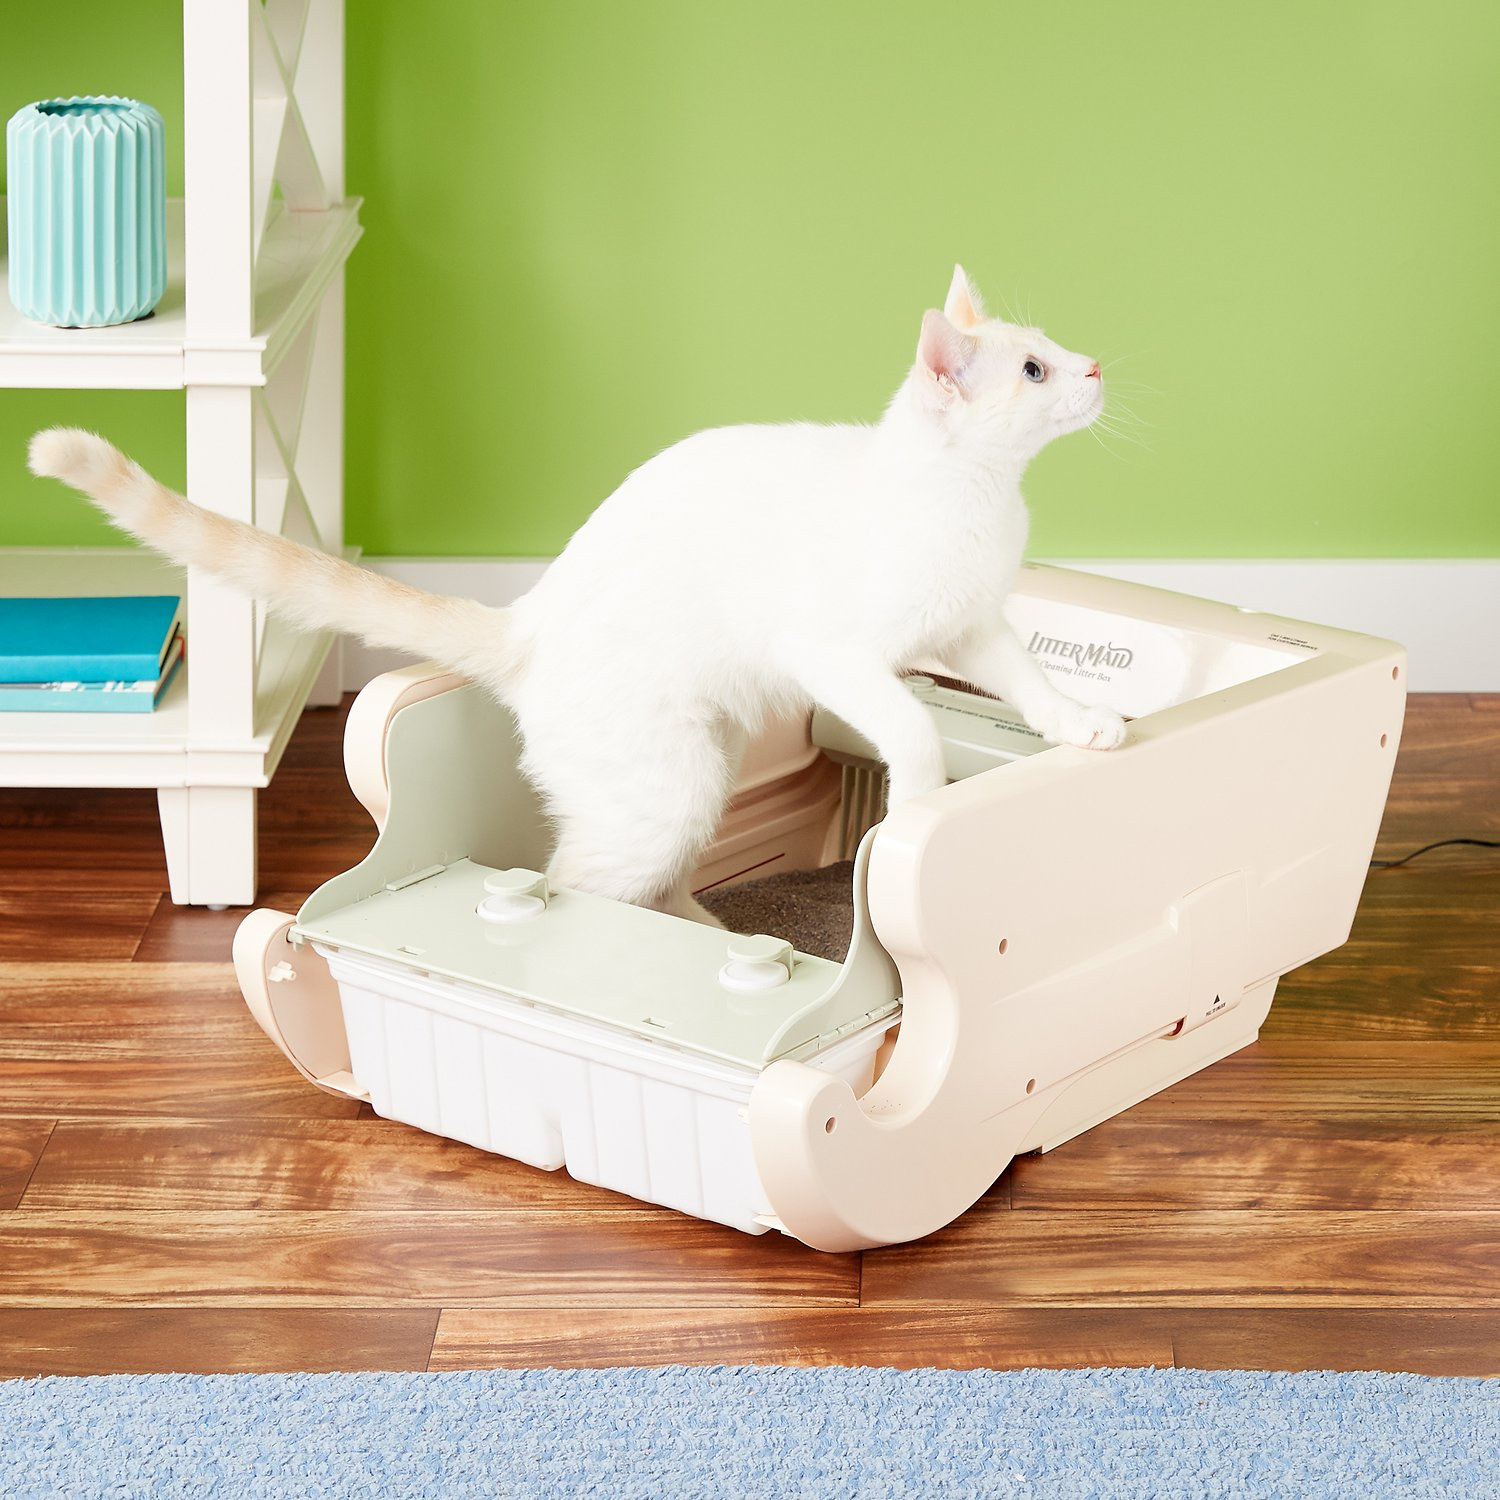 Littermaid Classic Series Automatic Self Cleaning Cat Litter Box